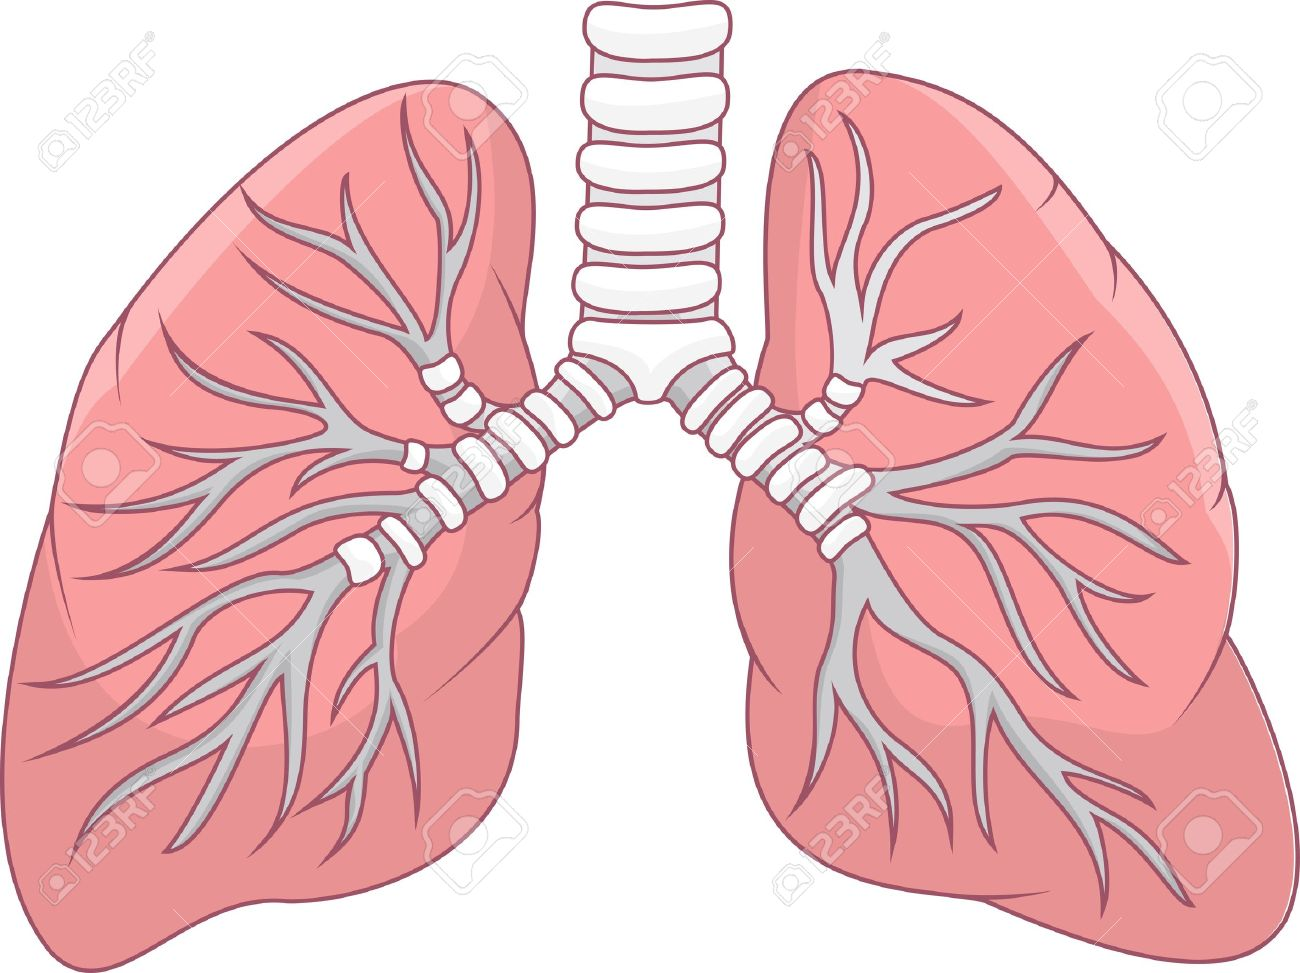 illustration of human lung royalty free cliparts, vectors, and, Cephalic Vein